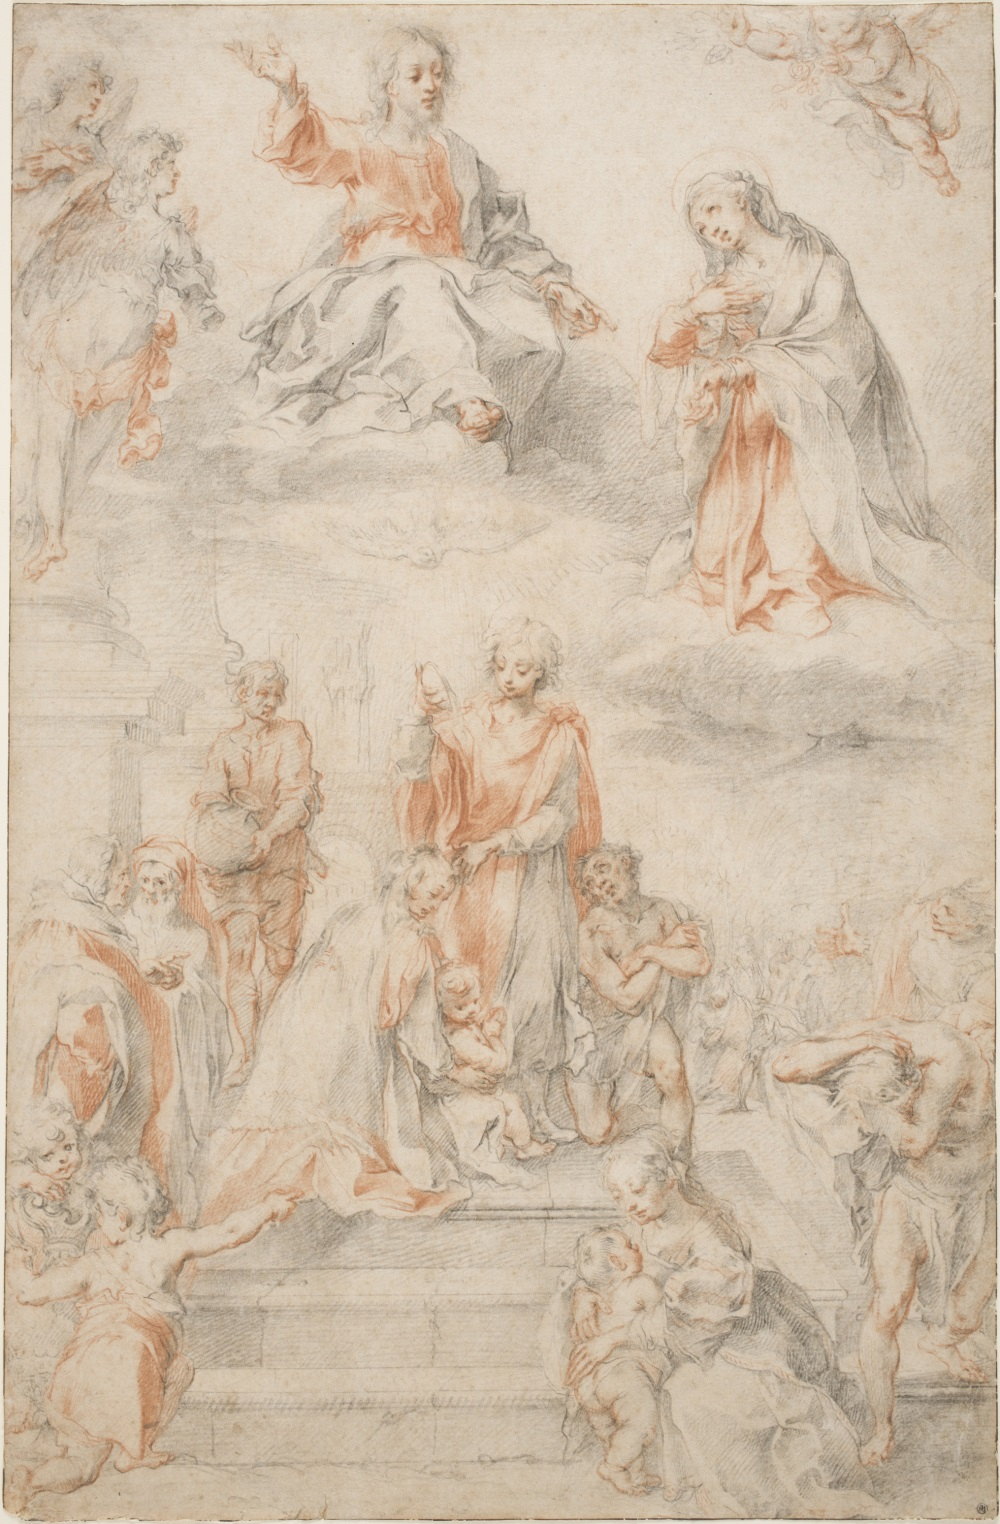 Francesco Vanni, Compositional Study for Saint Ansanus Baptizing the People of Siena, 1593–96. Collection of the Worcester (Mass.) Art Museum.